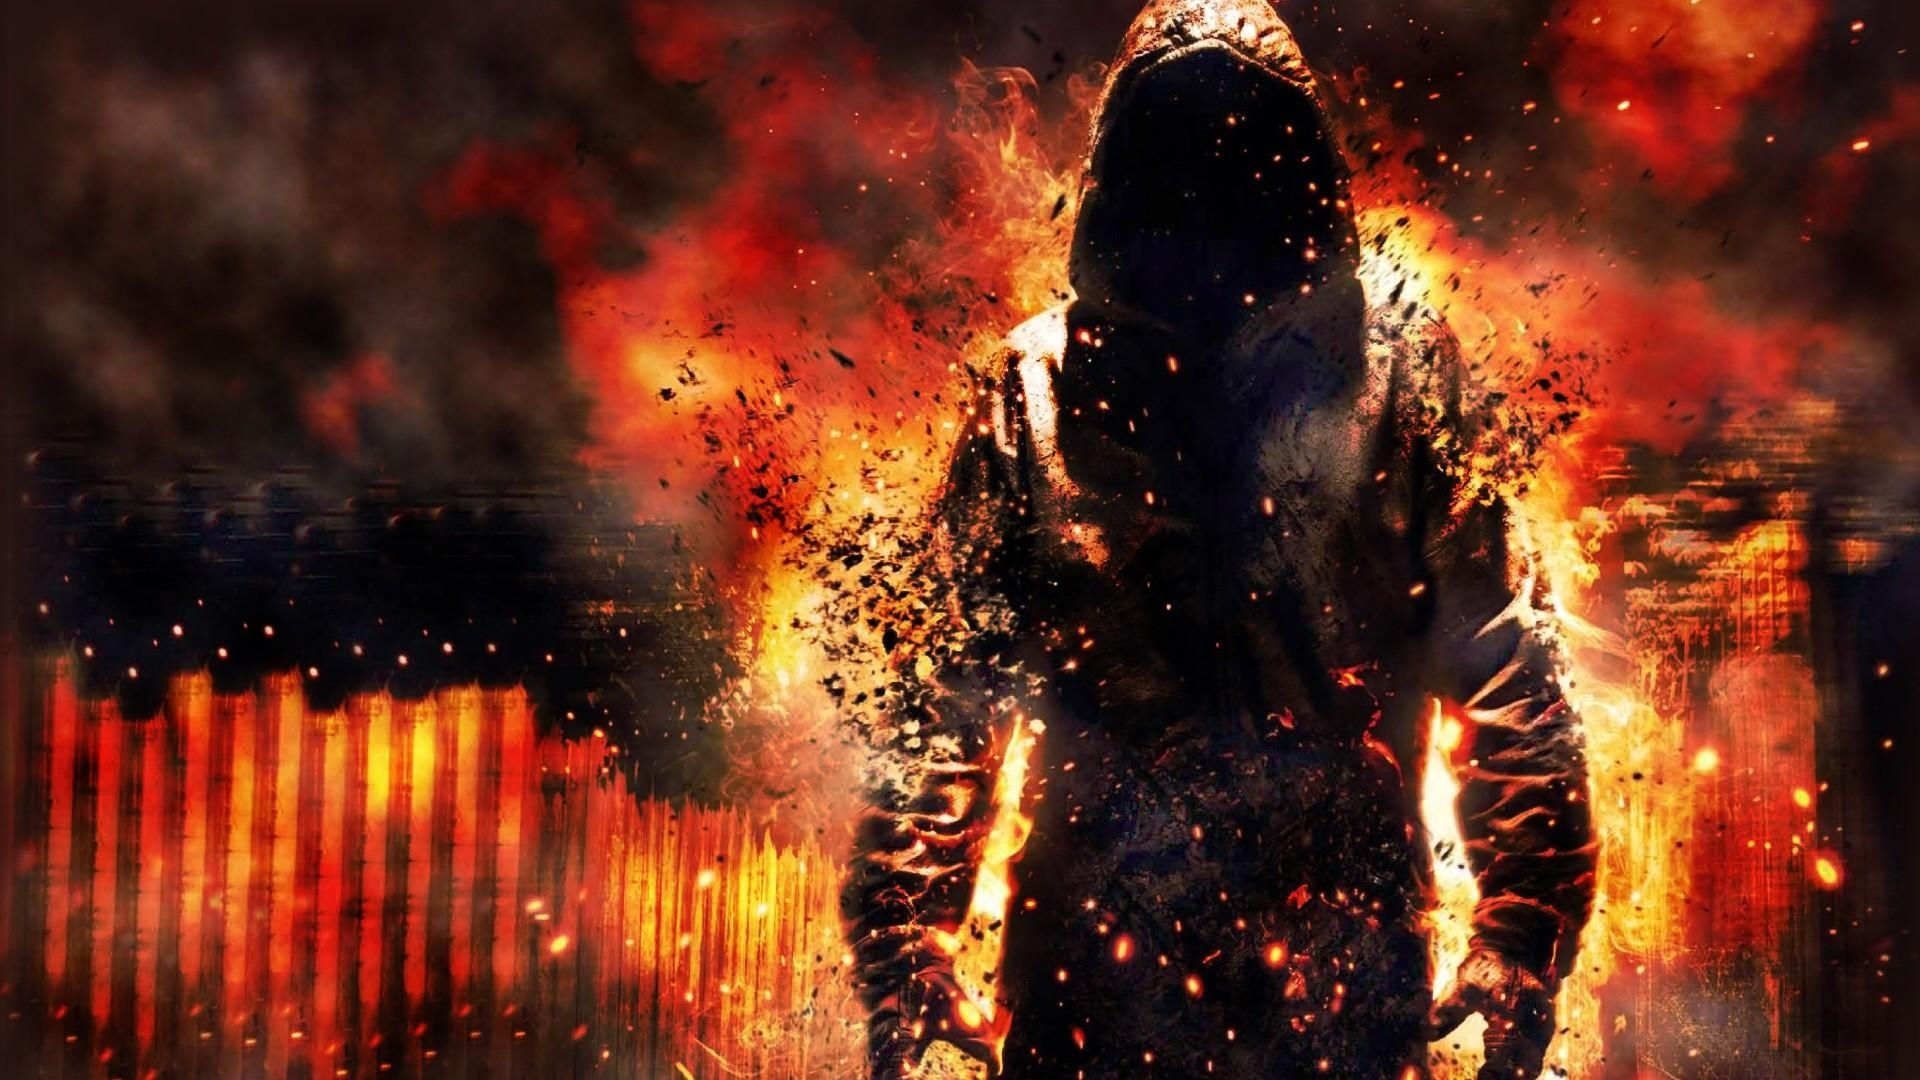 Cool hd desktop laptop wallpapers fire boy mask hd - Amazing wallpapers for boys ...